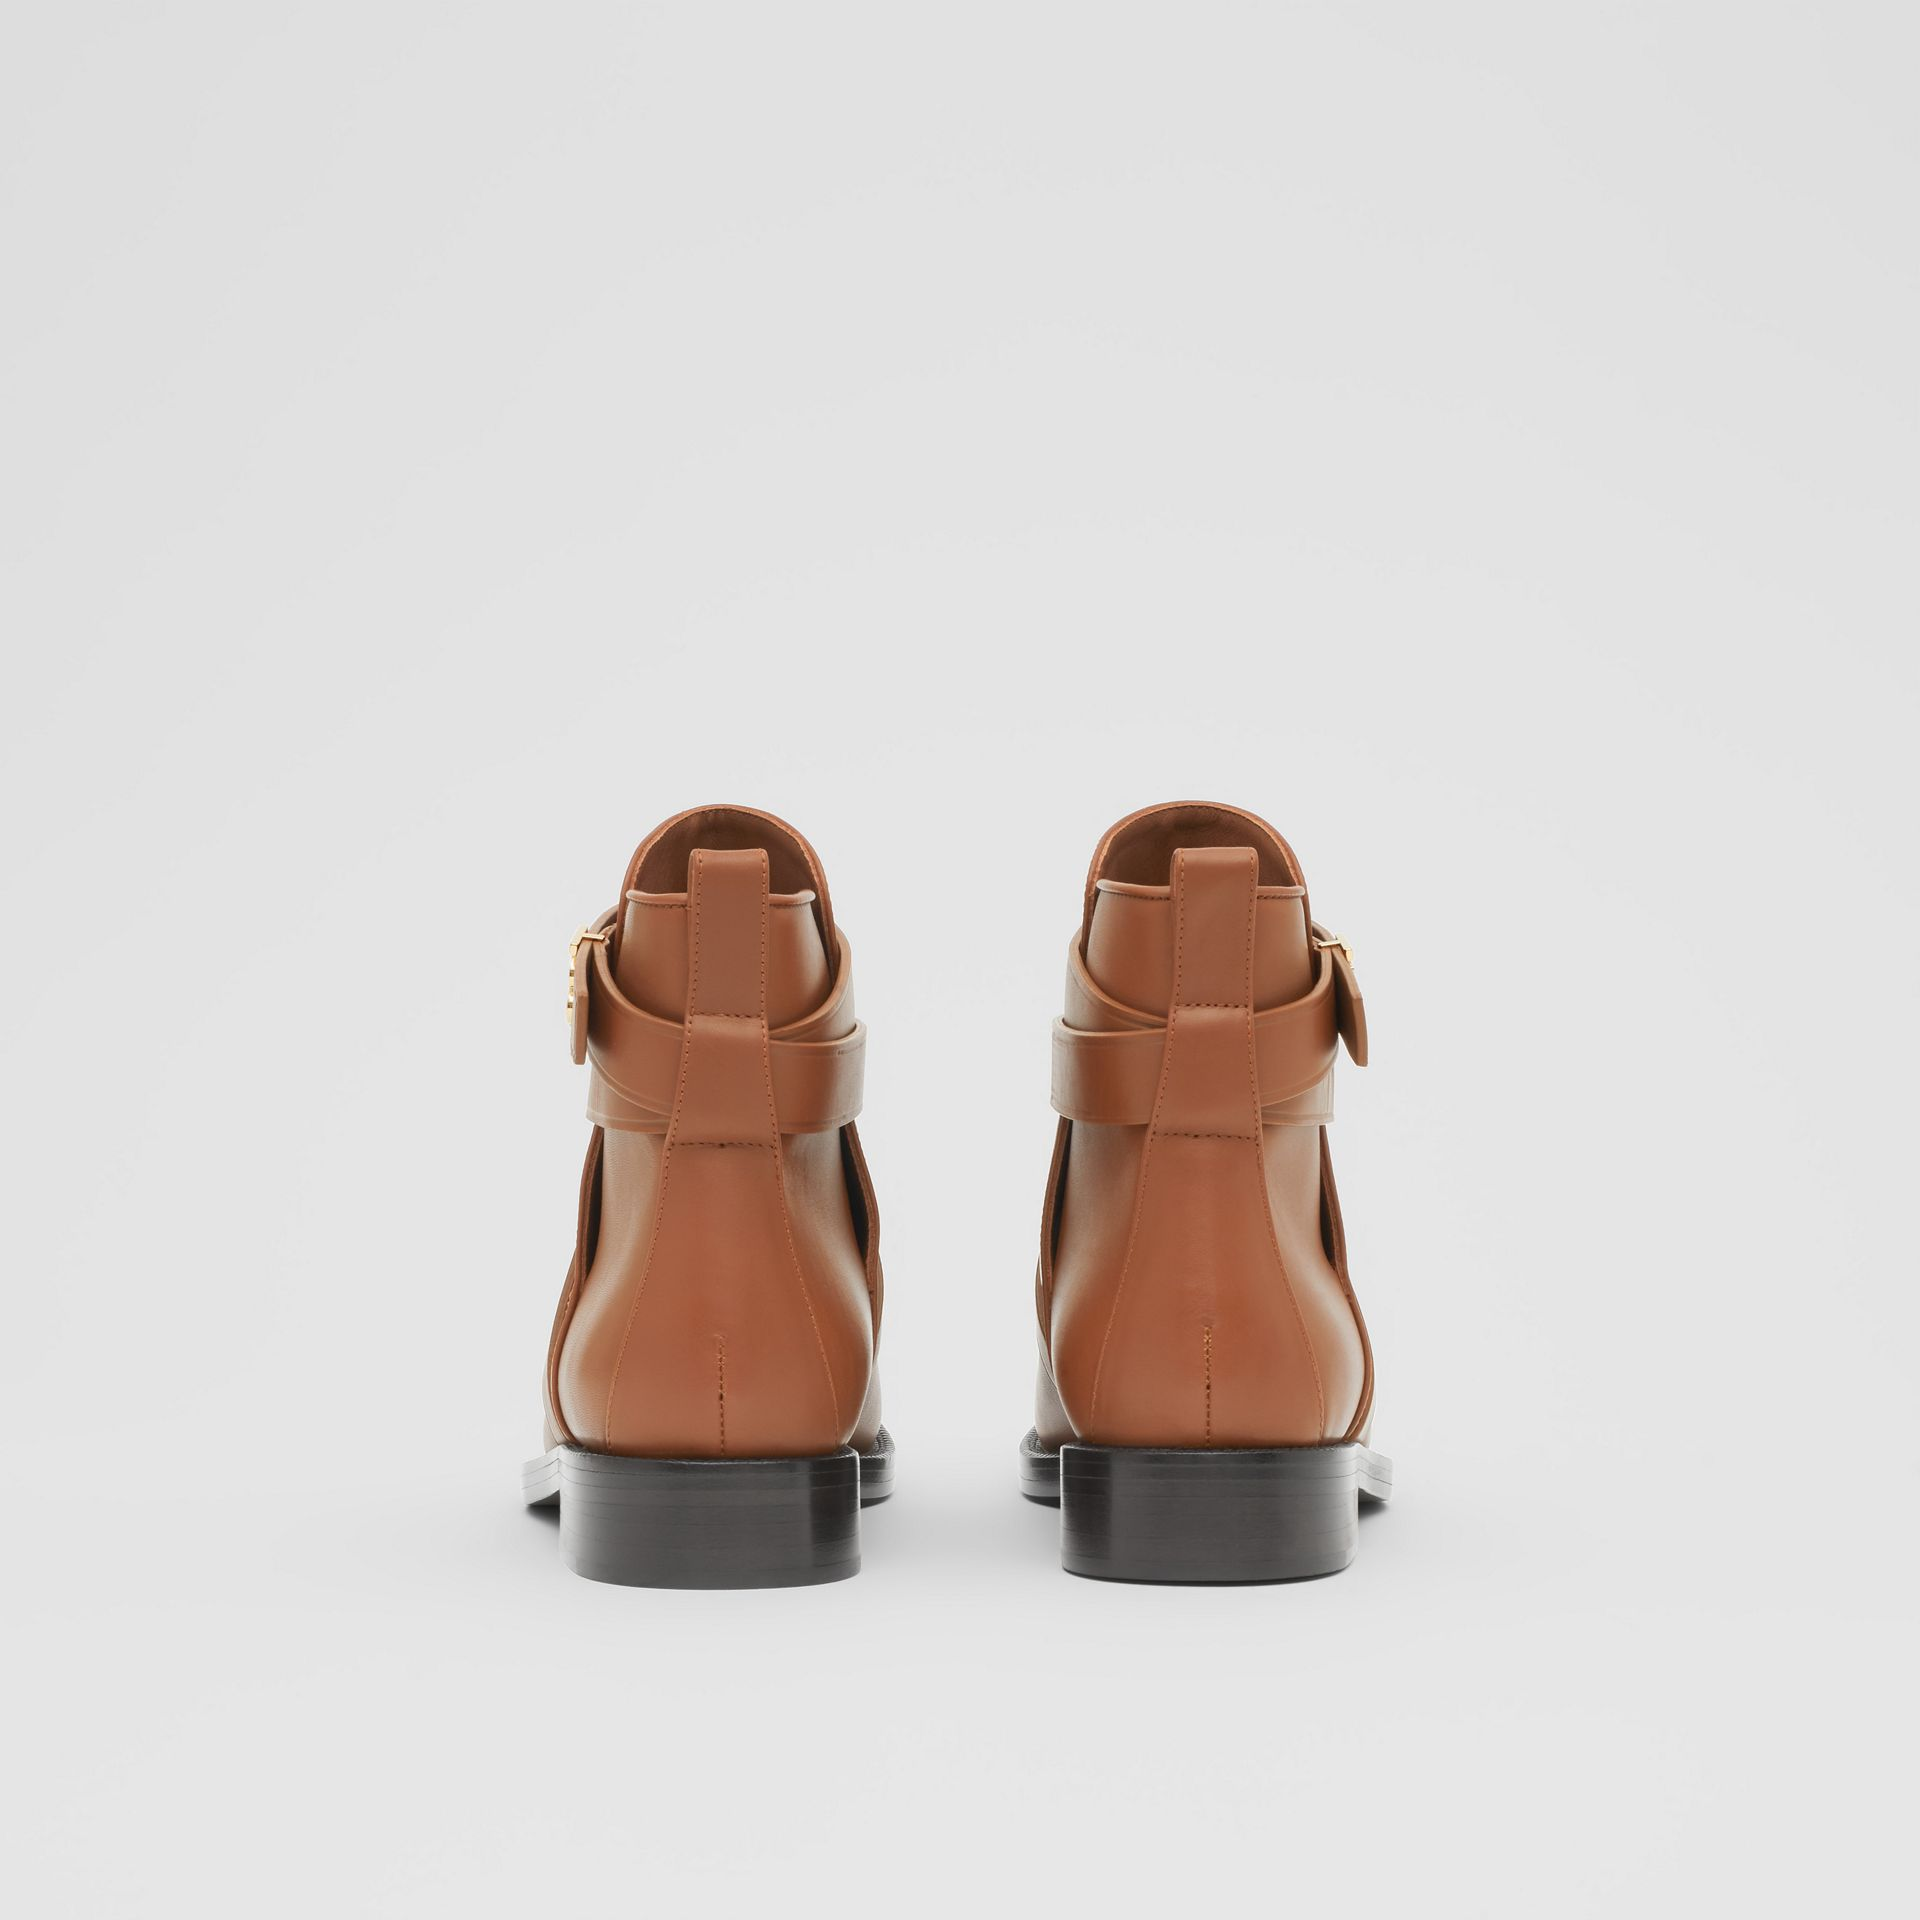 Monogram Motif Leather Ankle Boots in Tan - Women | Burberry - gallery image 3